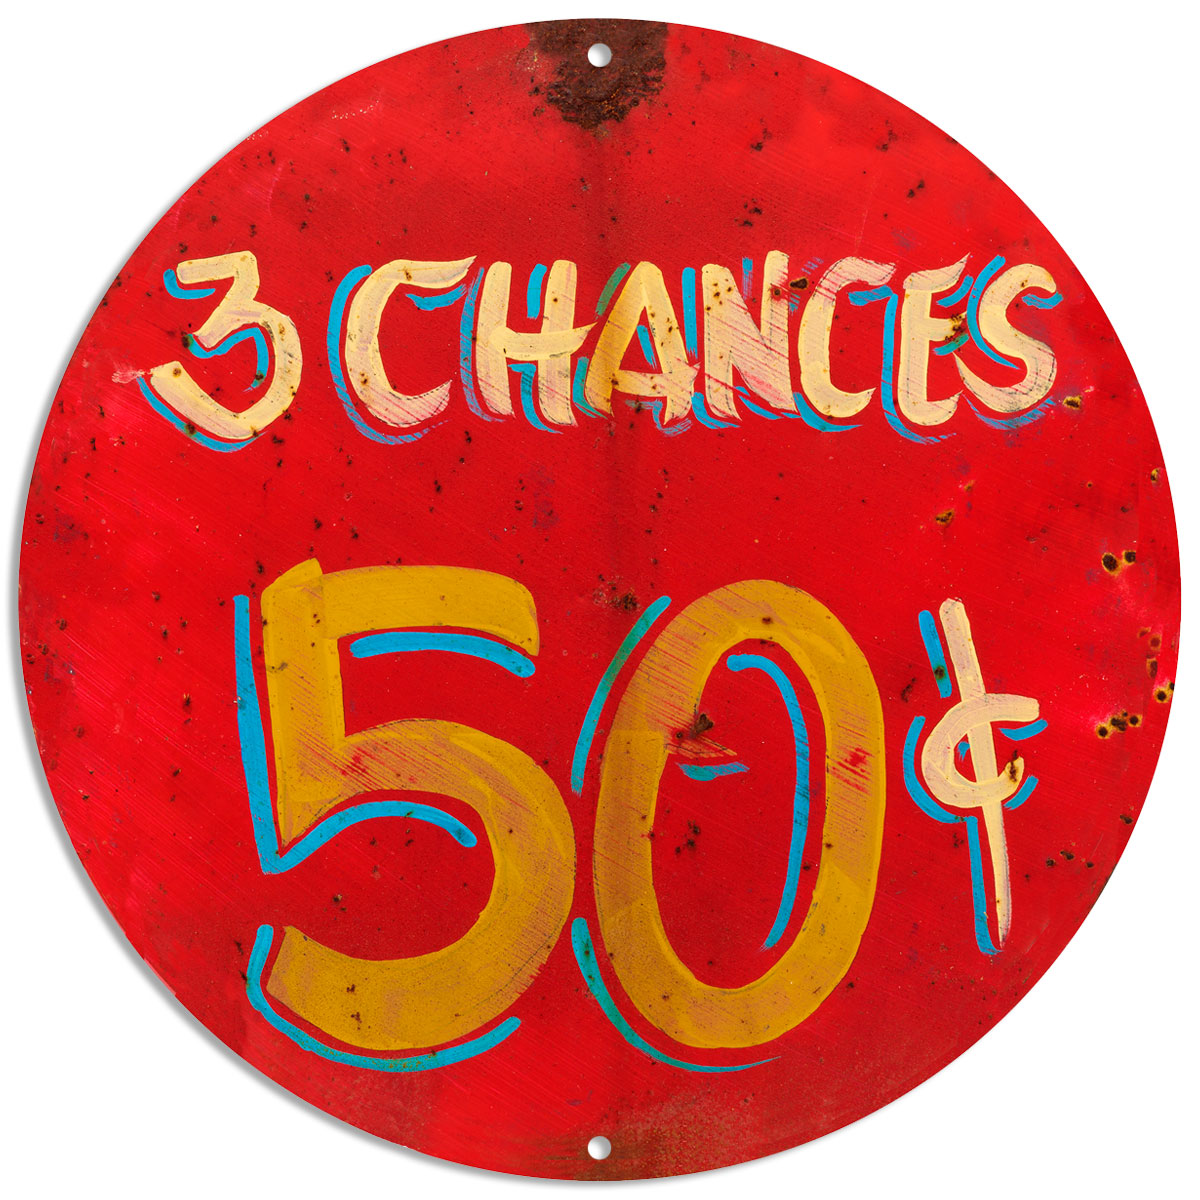 3 Chances 50 Cents Carnival Game Sign Rustic Vintage Style